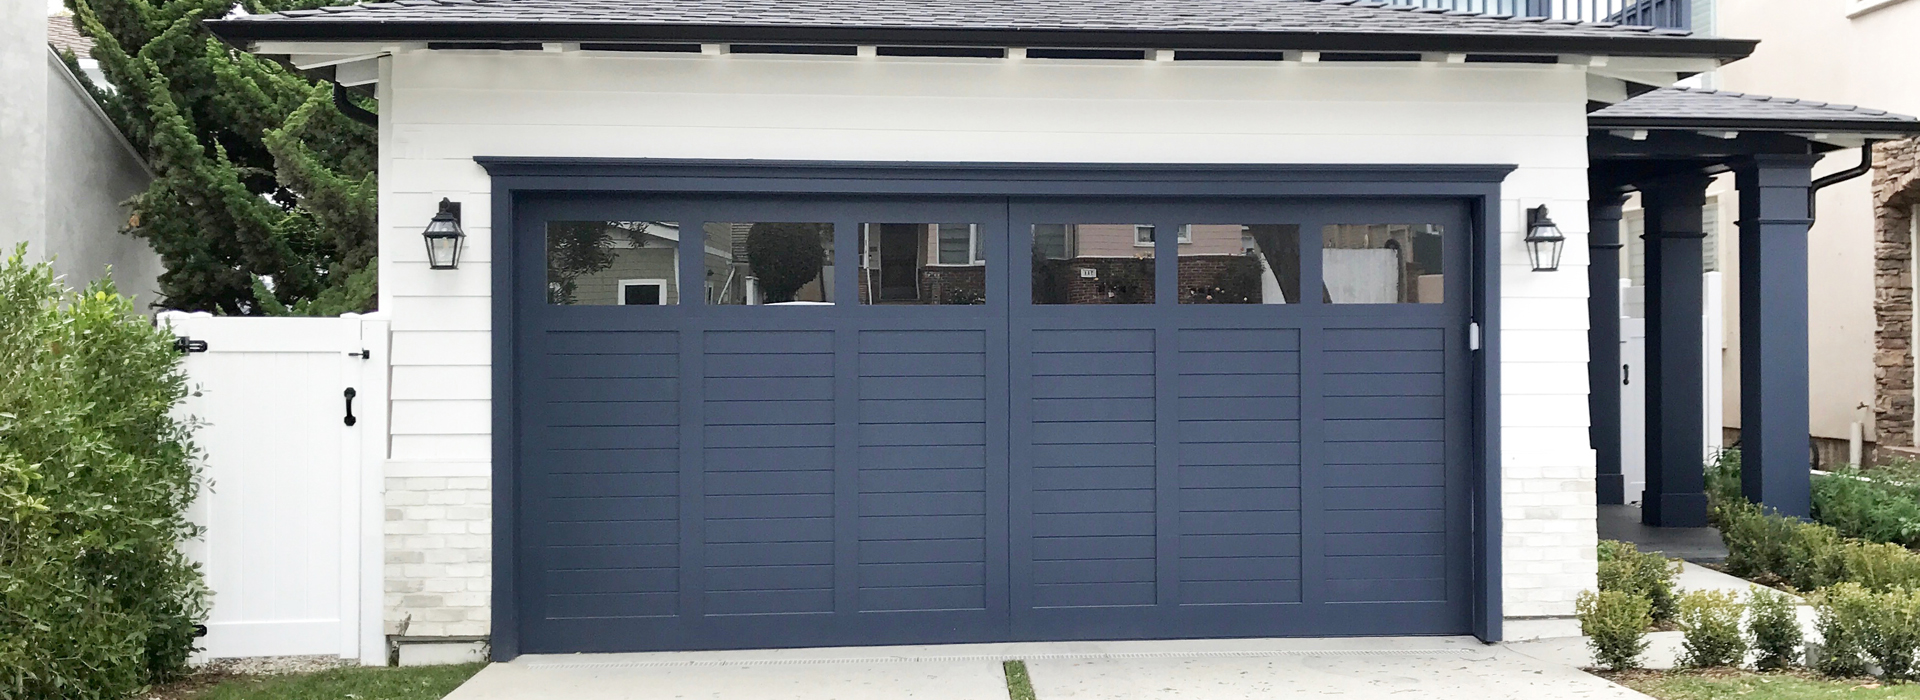 8 Garage Doors To Make Your Garage Look Stunning